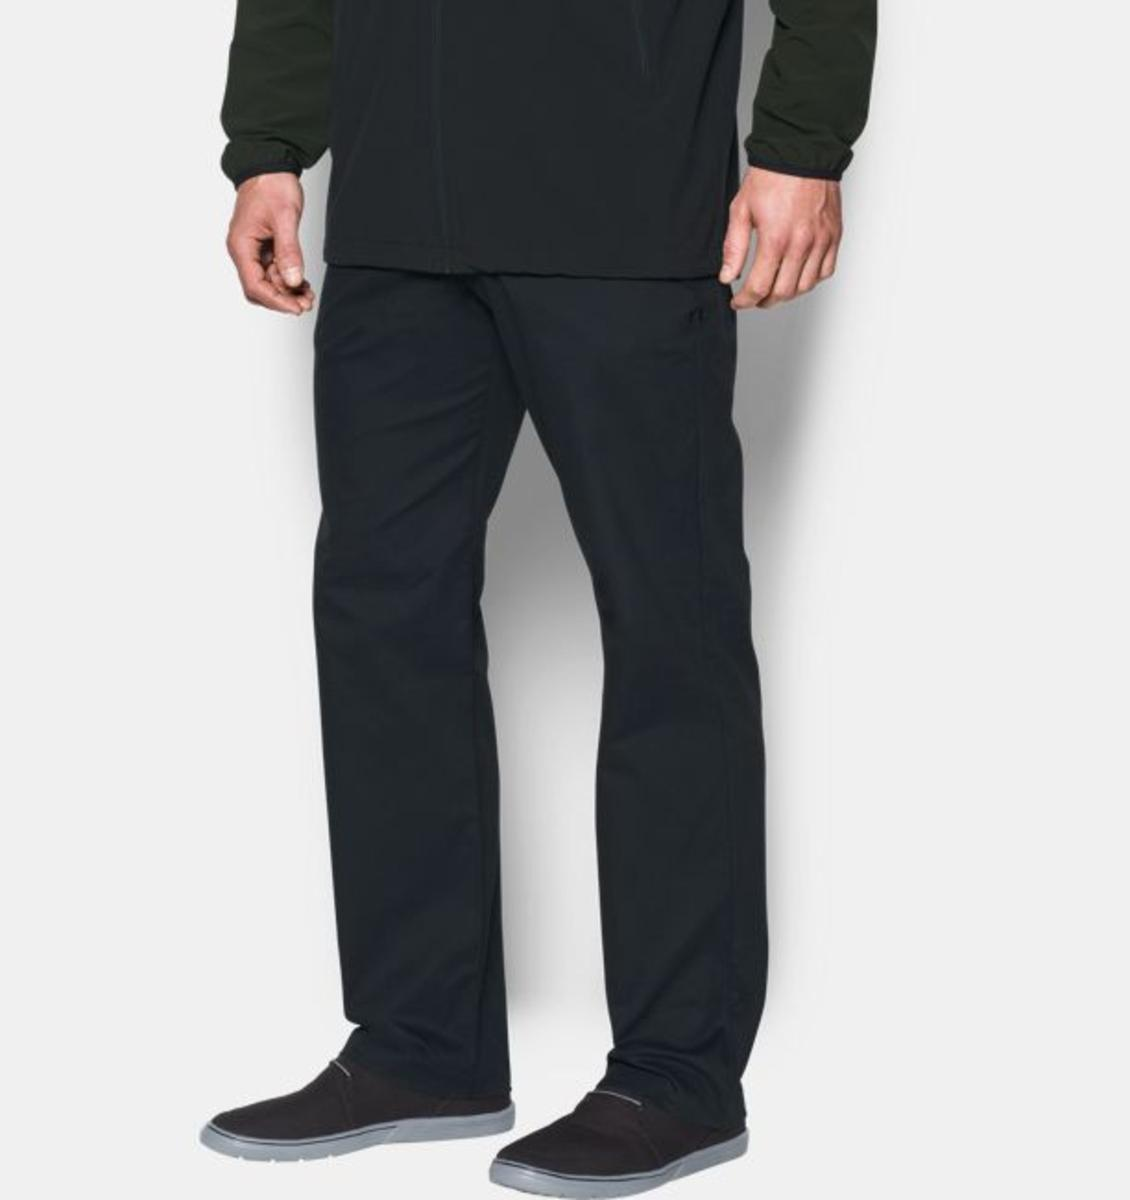 Under Armour Mens Ua Performance Chino Pant